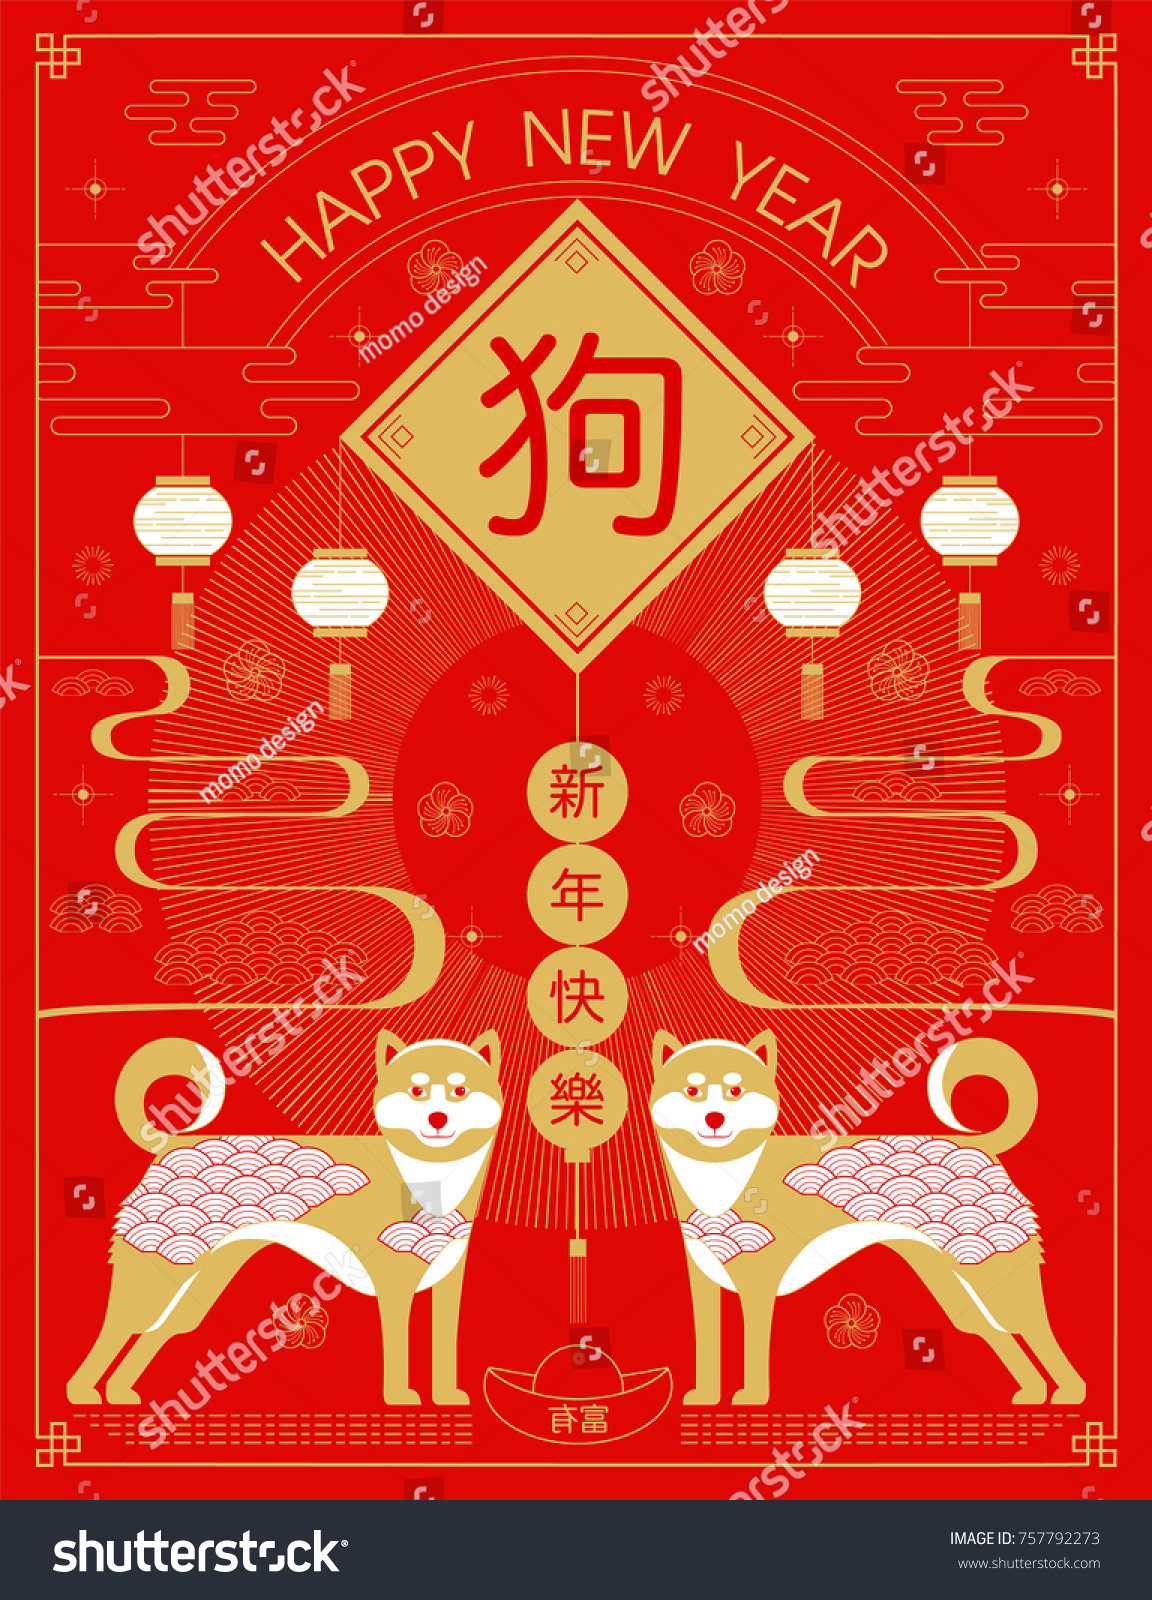 Chinese New Year 2018 Greetings Calendar Stock Vector Royalty Free